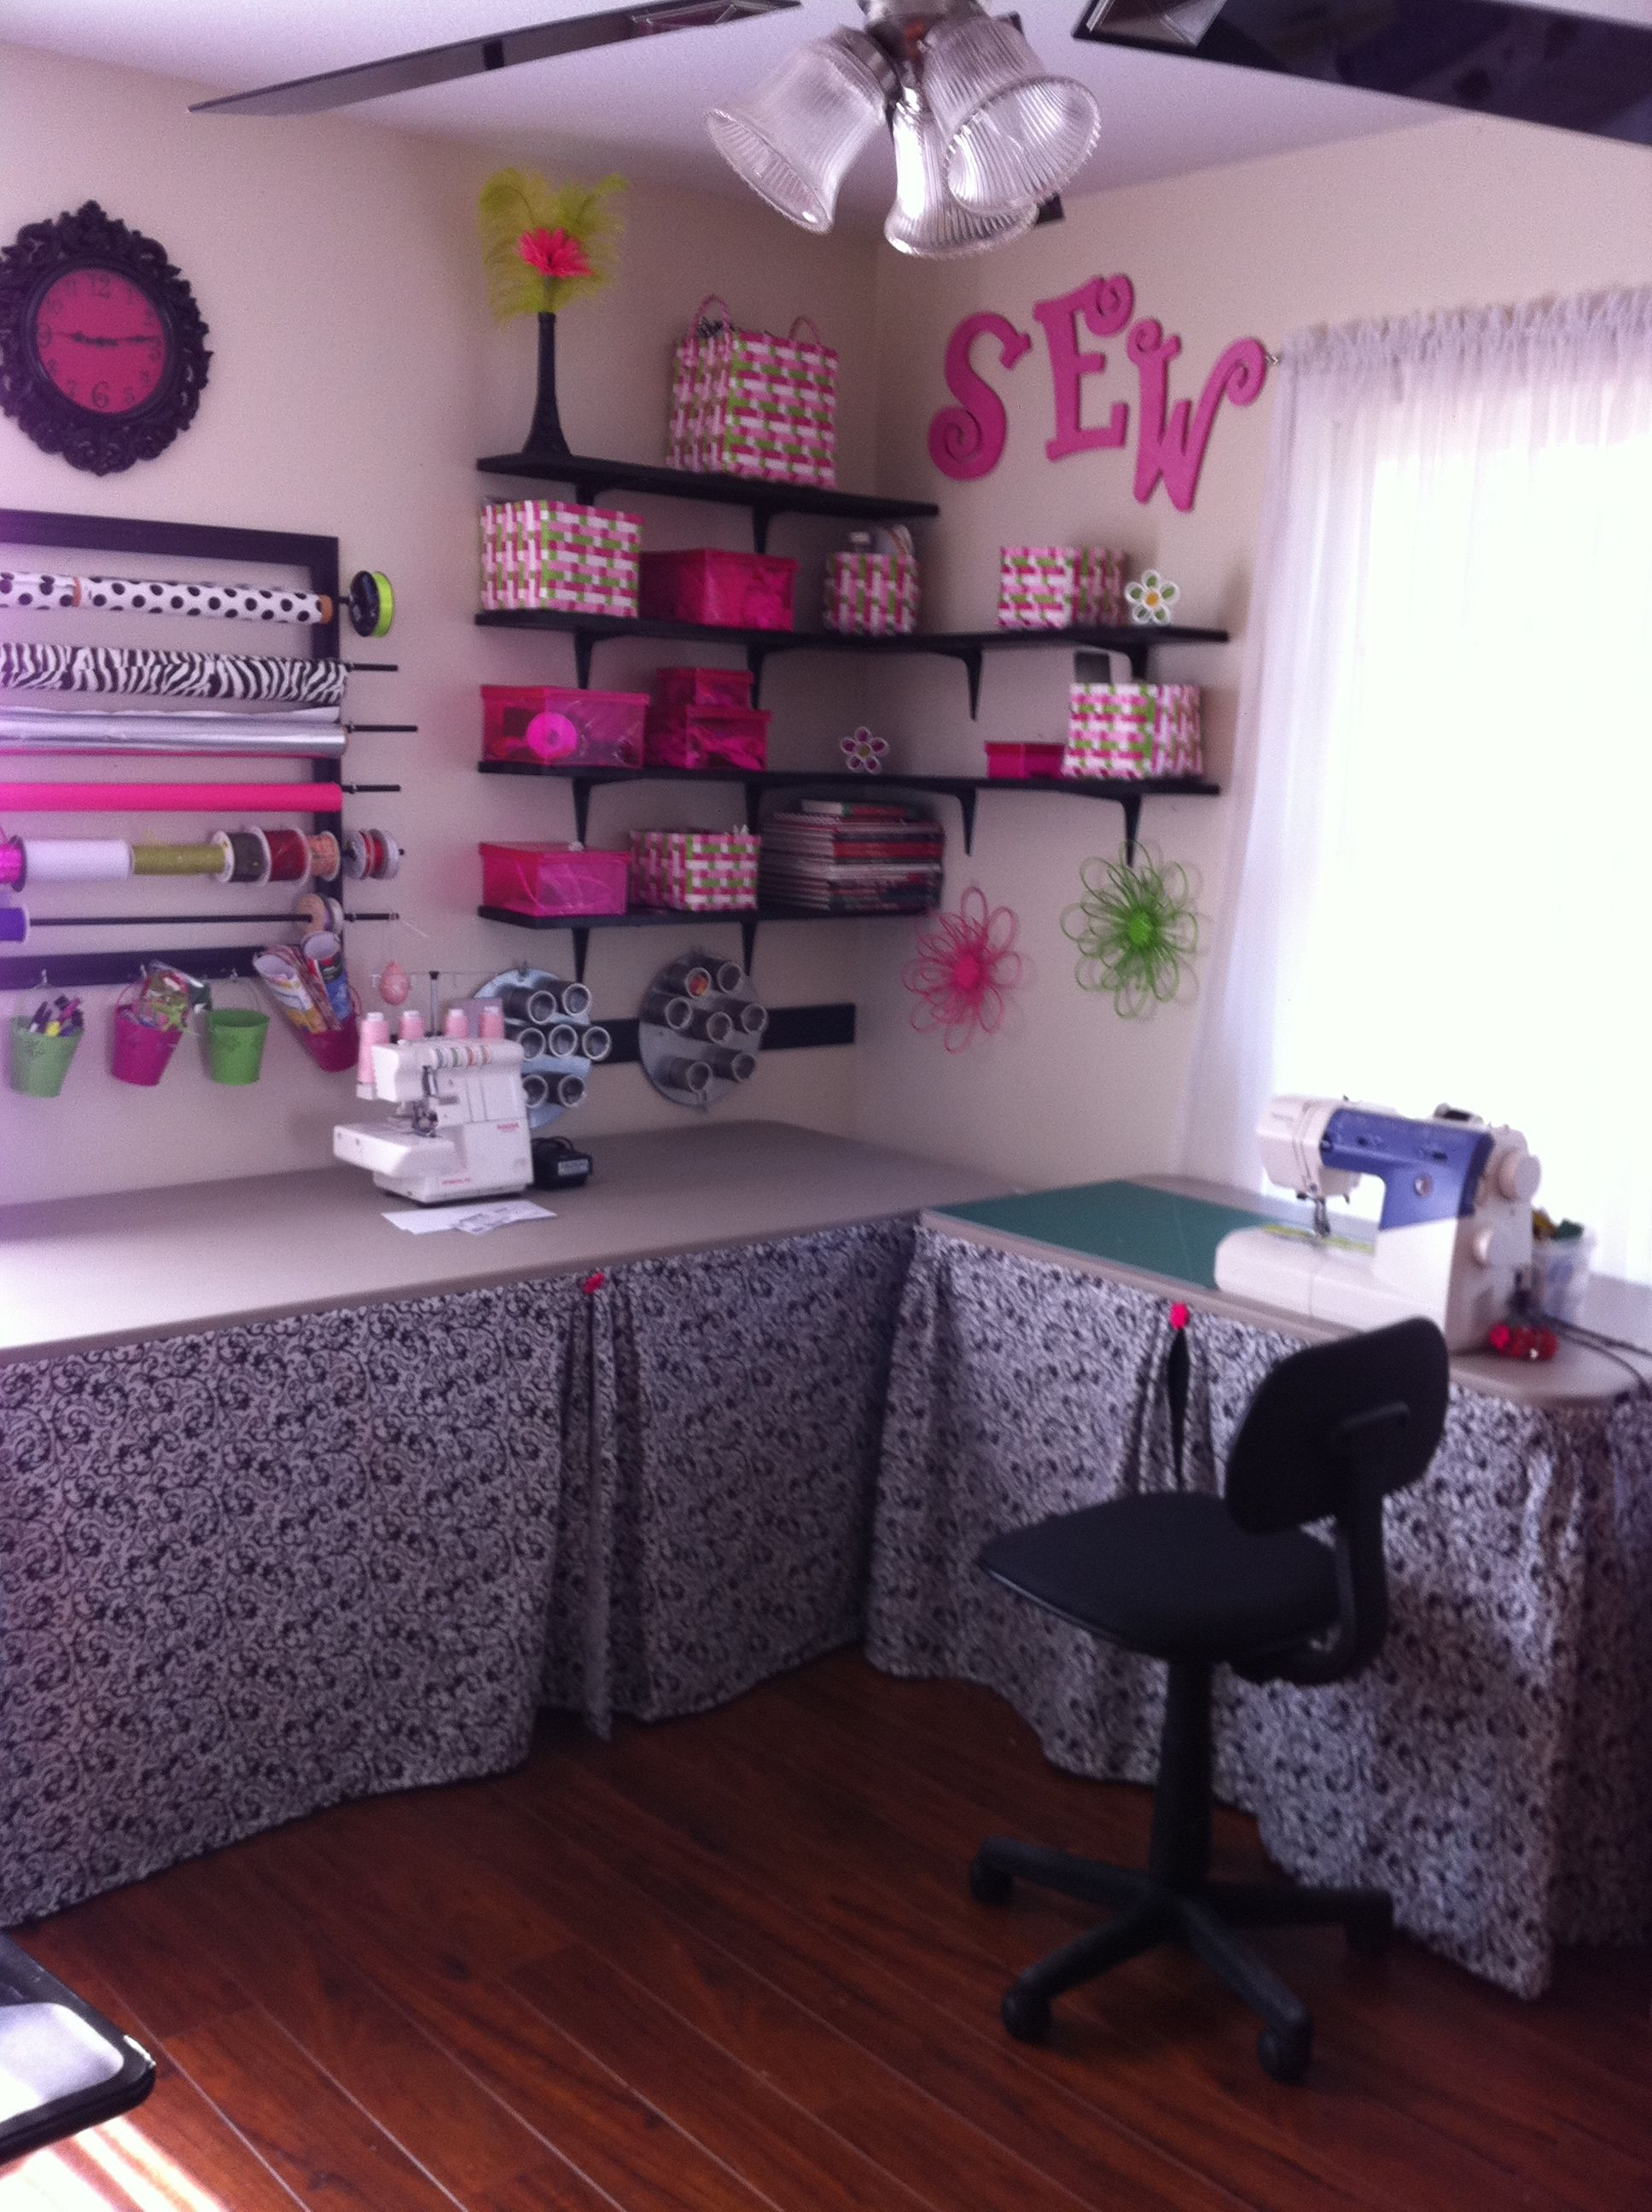 My sewing and craft room